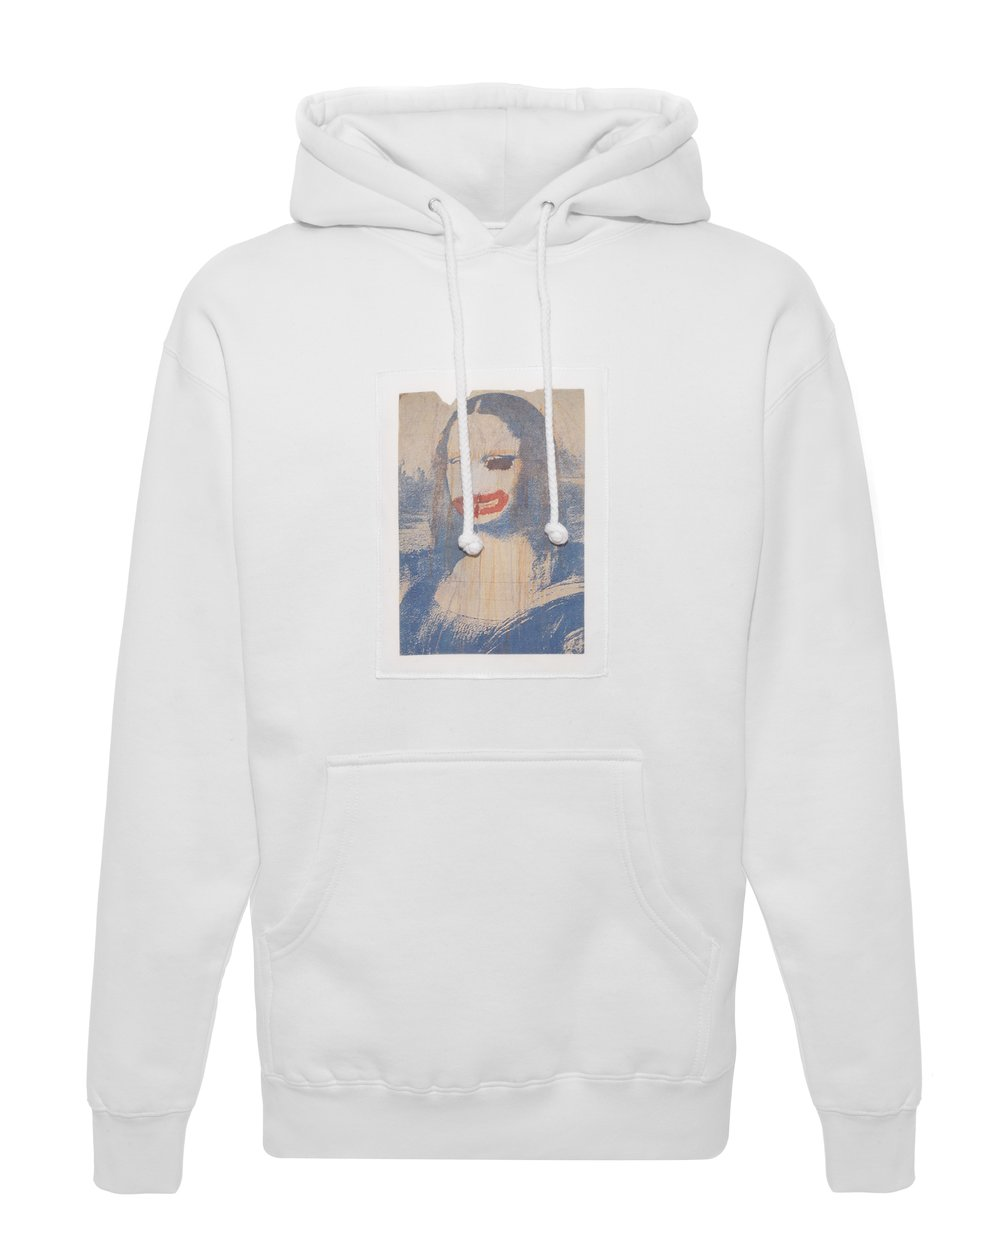 BASQUAIT - MONA LISA HOODIE - WHITE - £205 - BROWNS FASHION.jpg